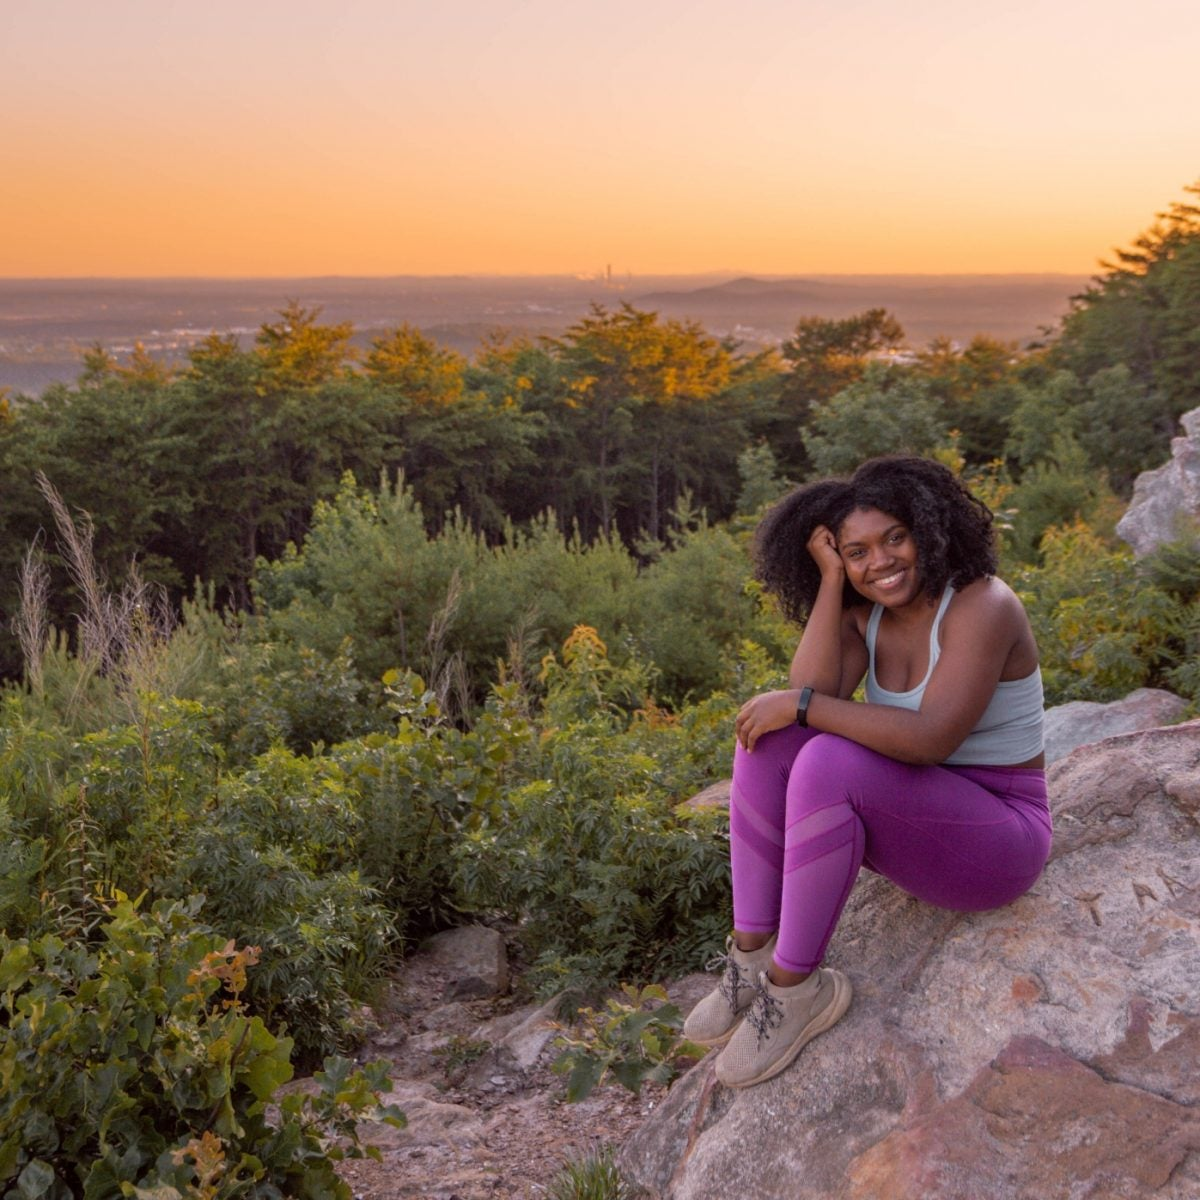 A Black Woman's Guide To Atlanta's Hiking Scene: Where To Go, What To Pack And Groups To Trek With